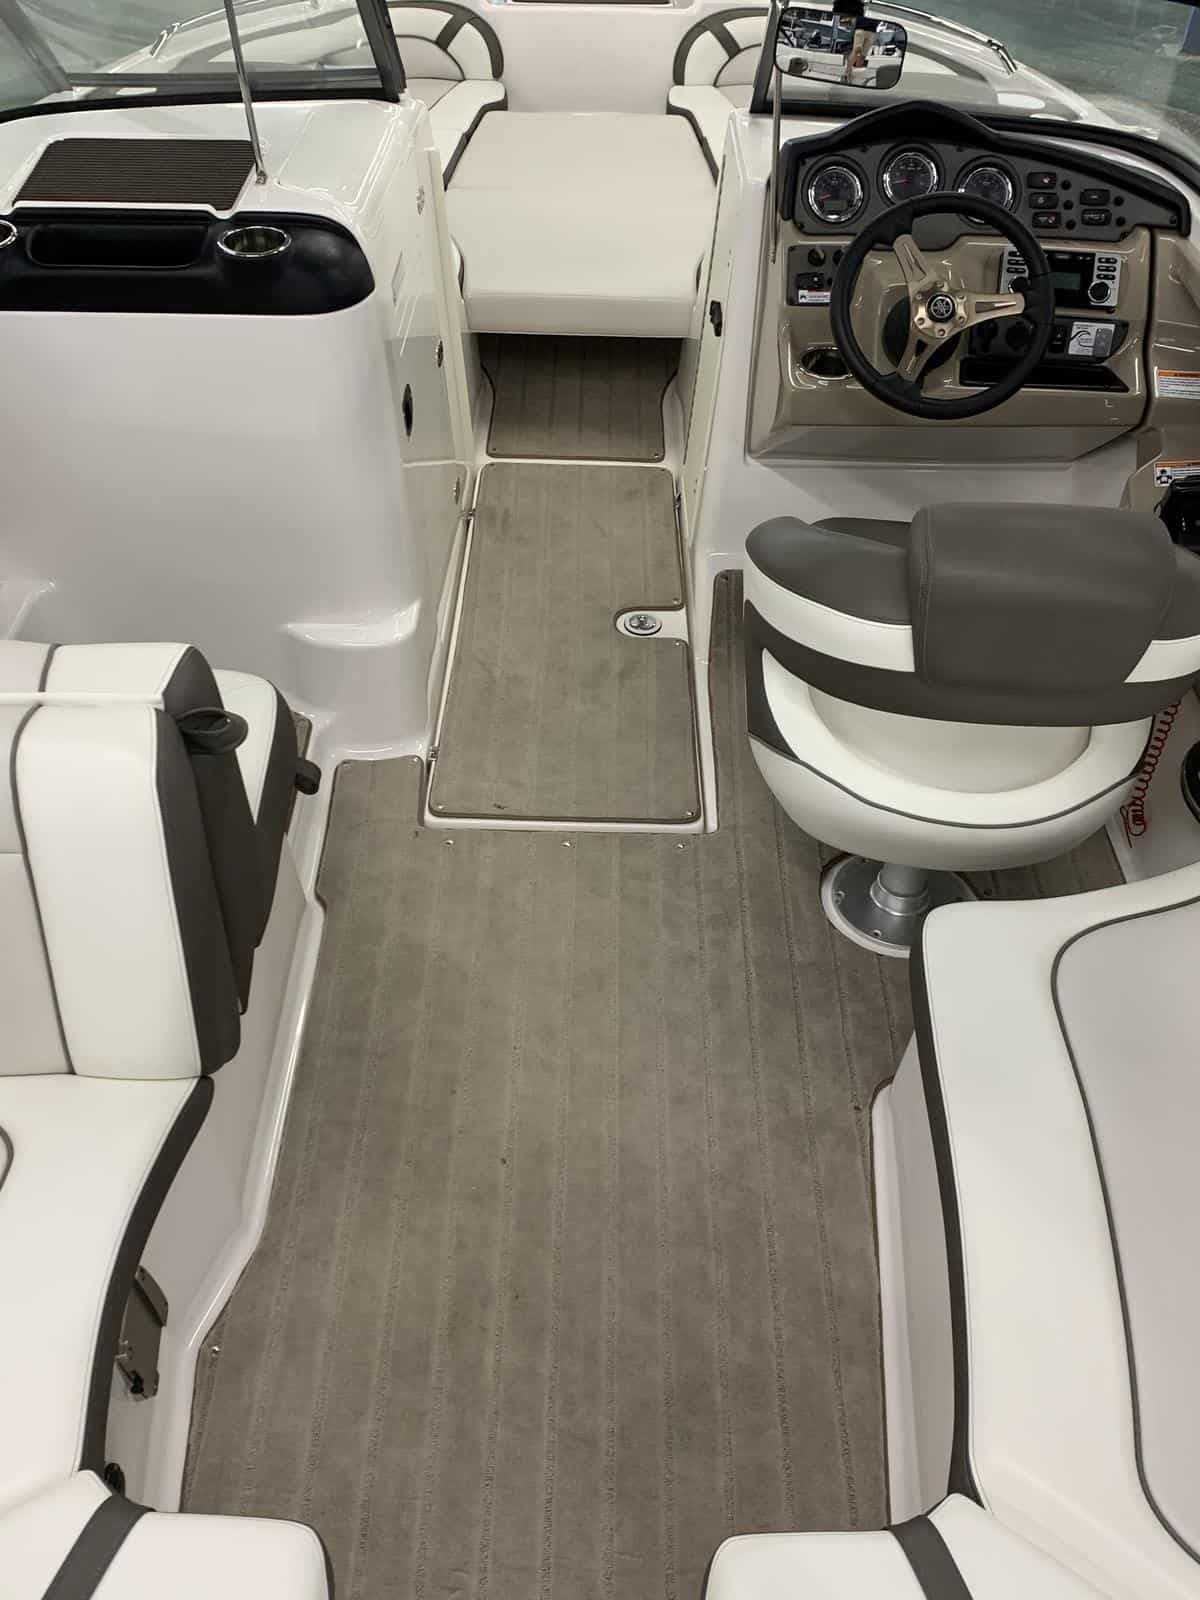 New  2014 Yamaha 242 Limited S Boat Engine in Metairie,